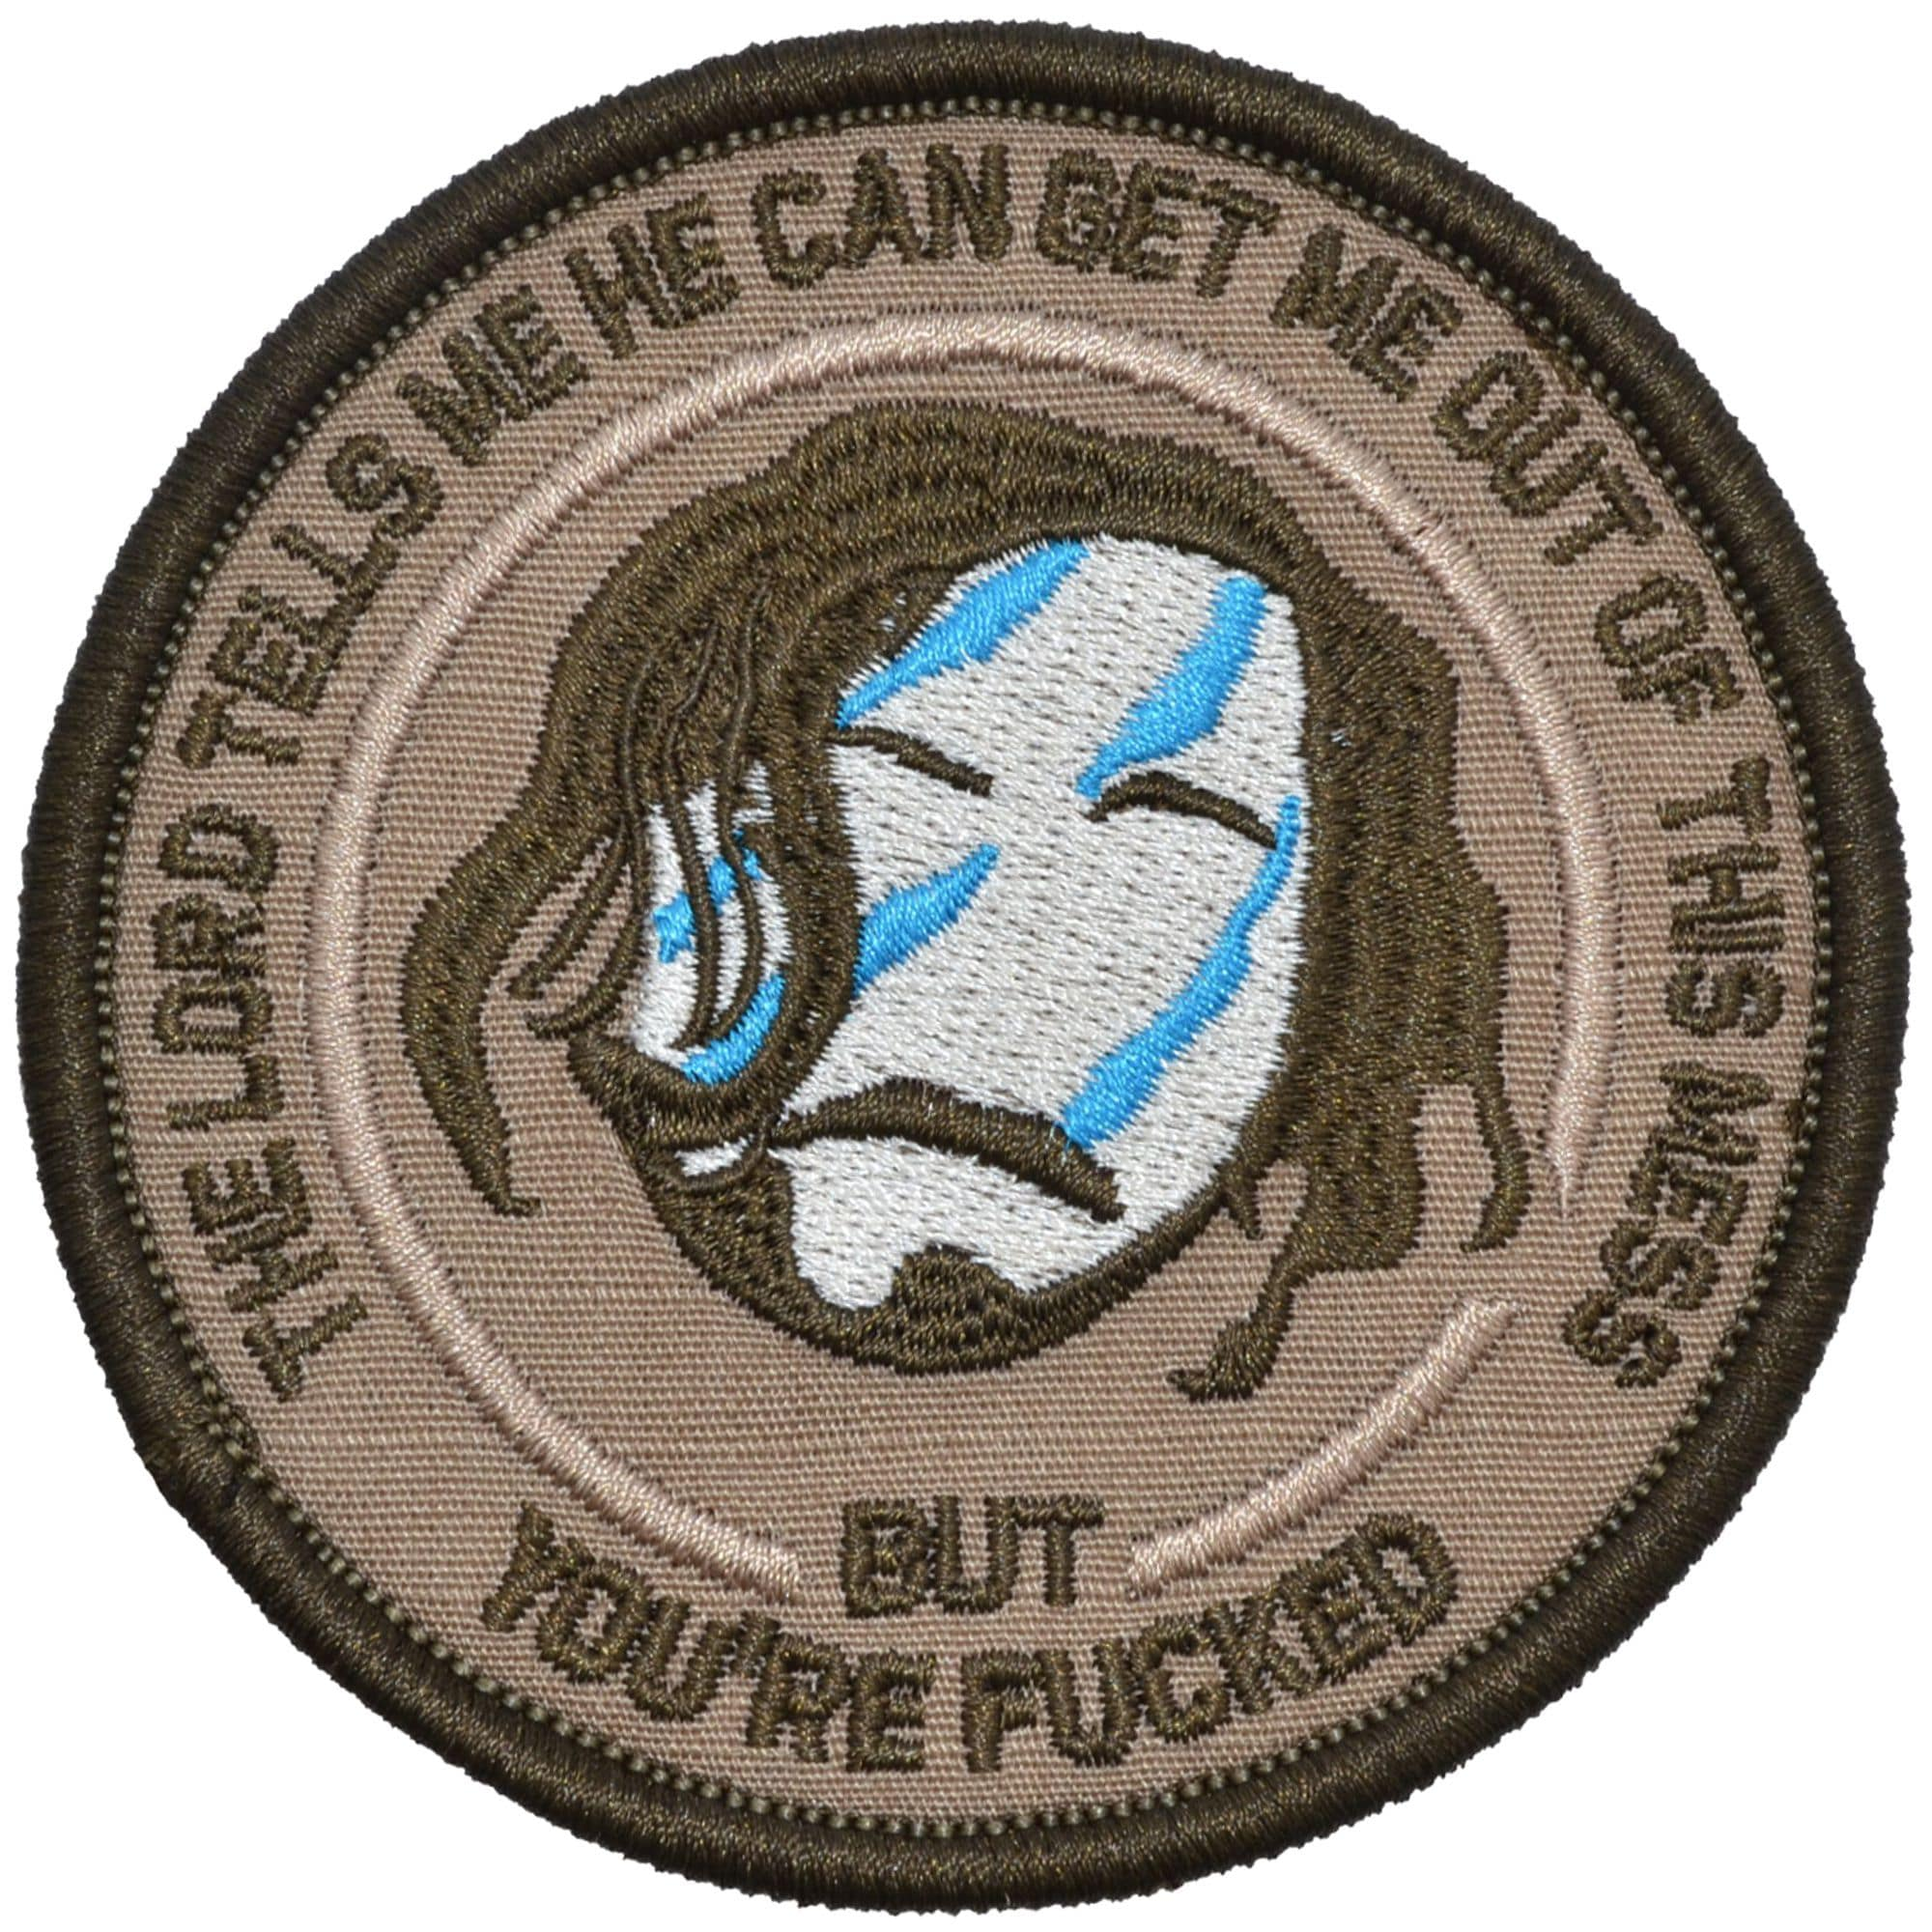 Tactical Gear Junkie Patches Coyote Brown The Lord Tells Me He Can Get Me Out Of This Mess - 3.5 inch Round Patch